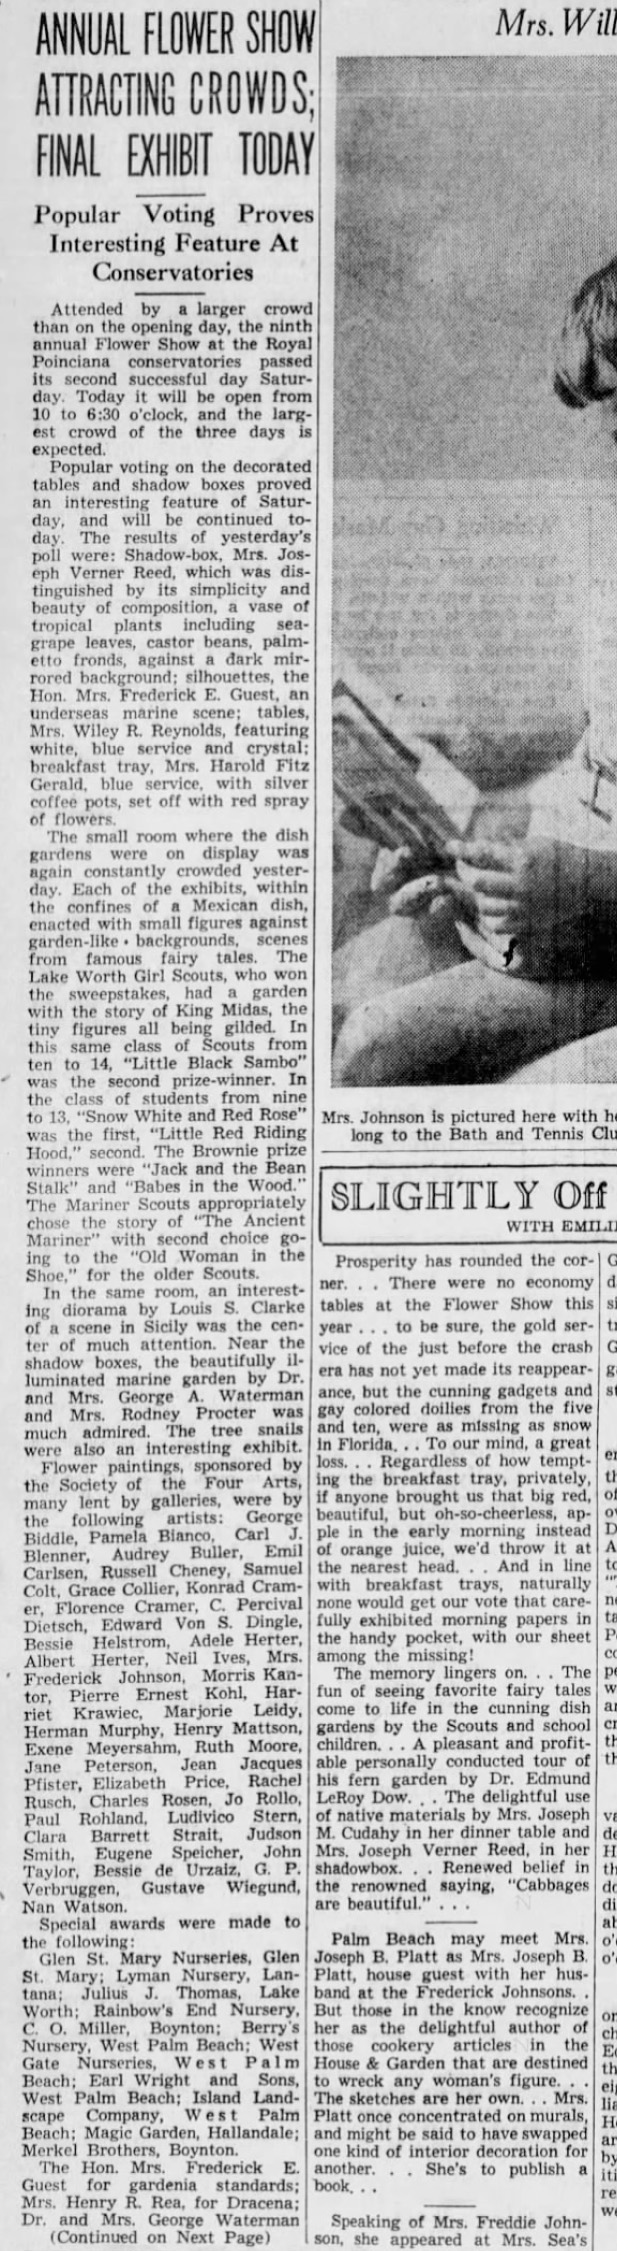 "The Palm Beach Post, West Palm Beach, FL, ""Annual Flower Show Attracting Crowds; Final Exhibit Today"", Sunday, February 21, 1937, page 11, not illustrated"